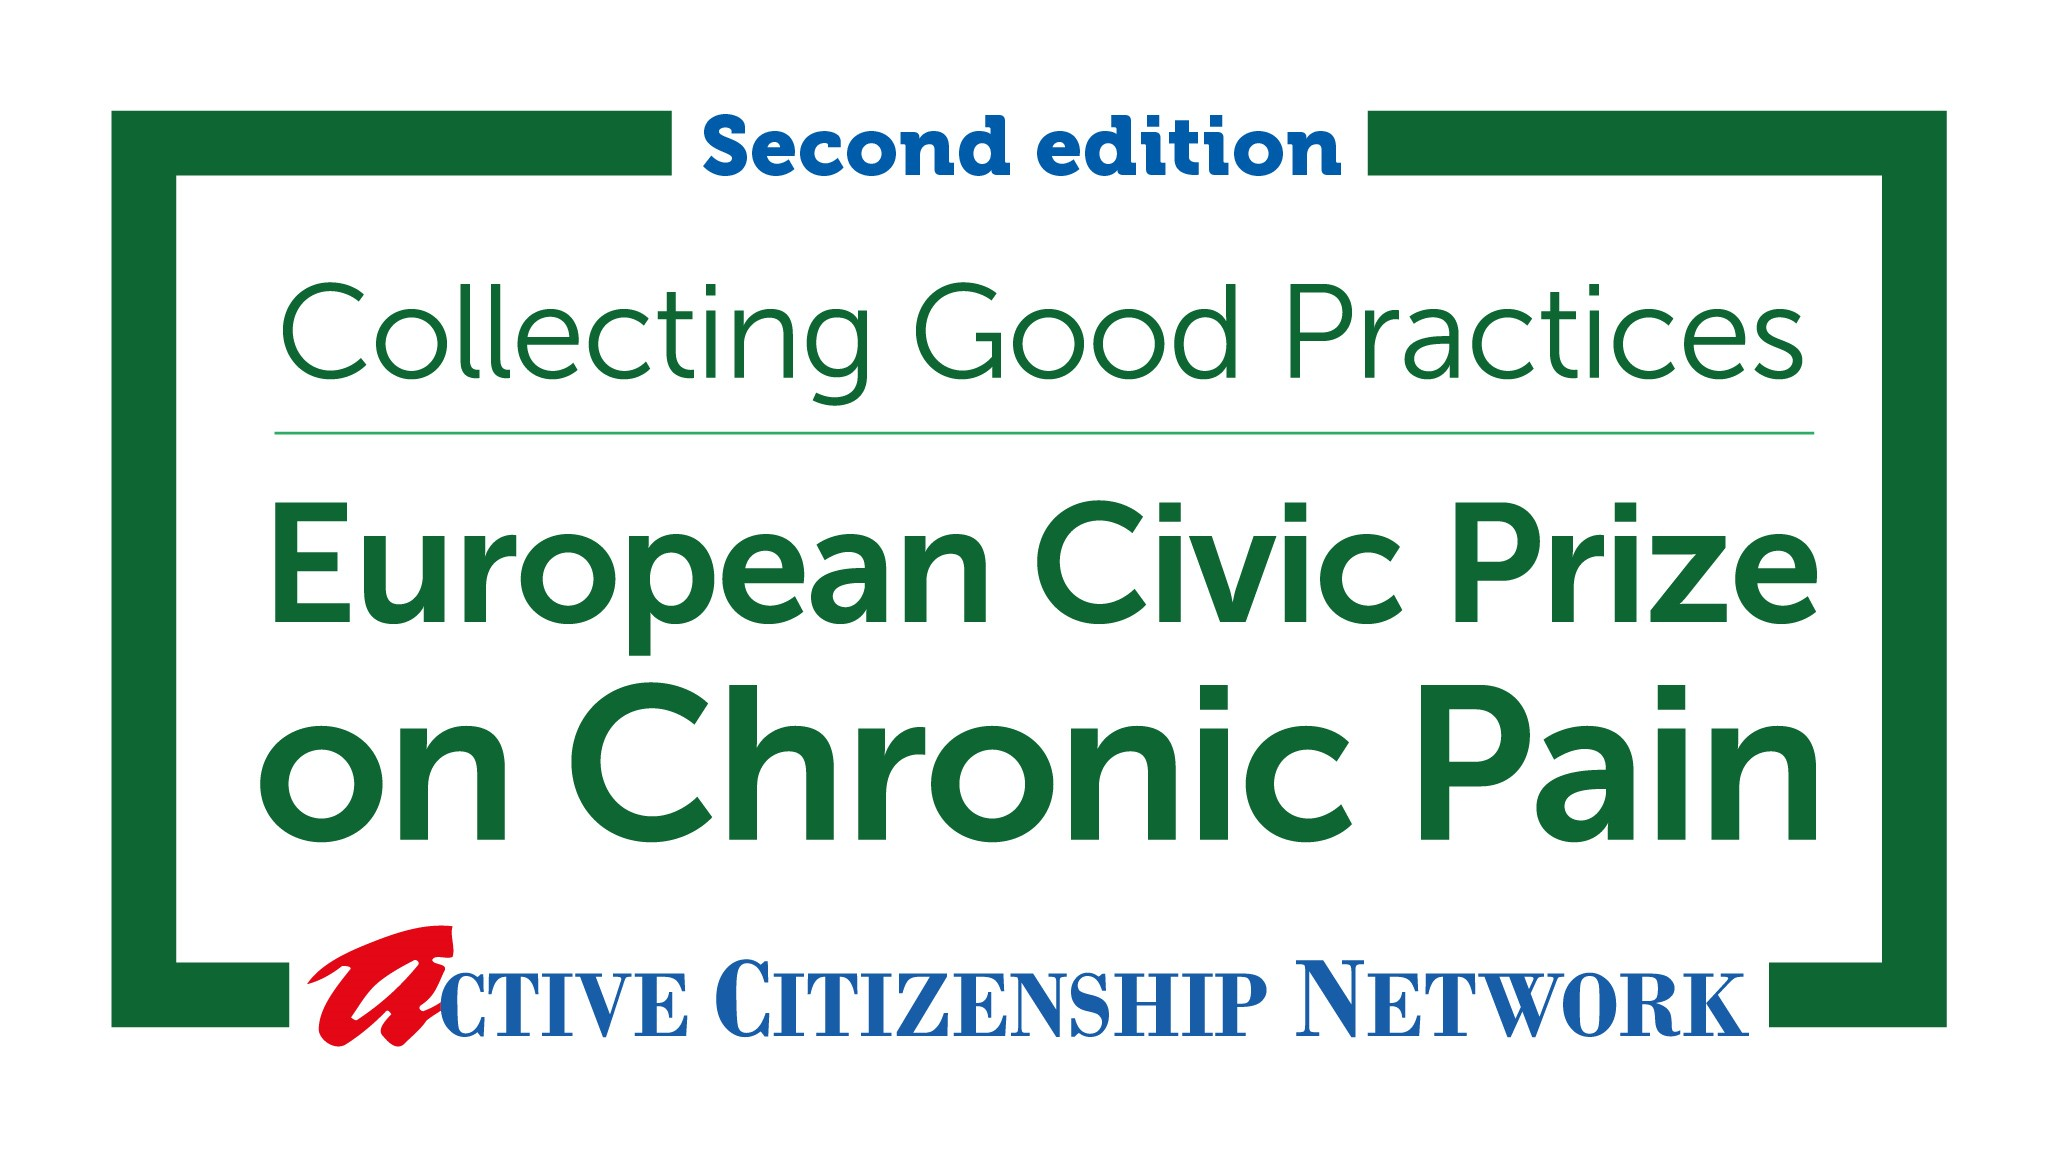 https://www.federsalute.org/wp/wp-content/uploads/2018/10/european-civic-prize-on-chronic-pain-collecting-good-practices-second-edition.jpg